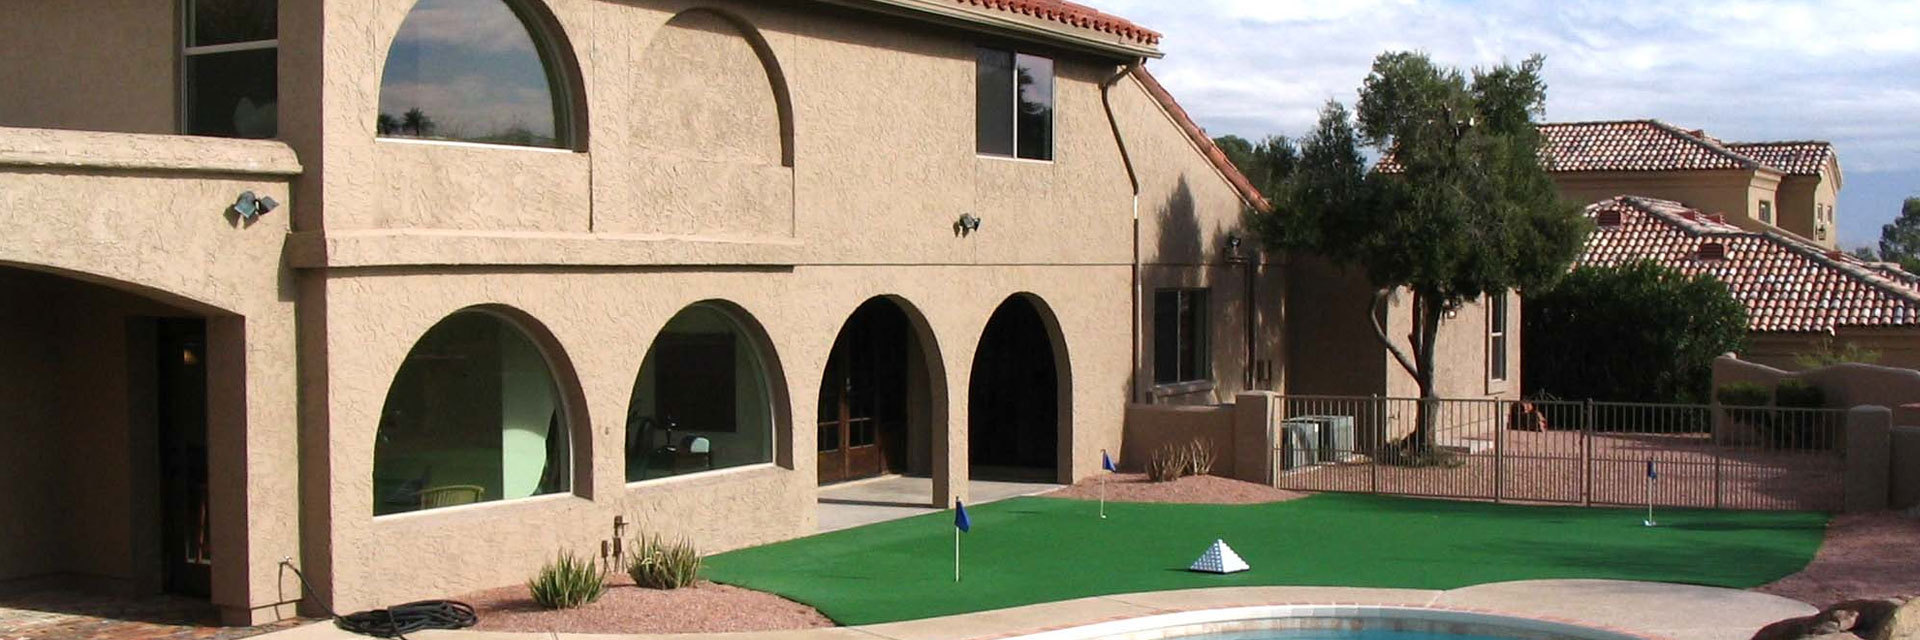 Phoenix / Scottsdale, AZ Golf Package: December/January Special! Ultimate Estate Homes + great golf for $199 per person, per day!